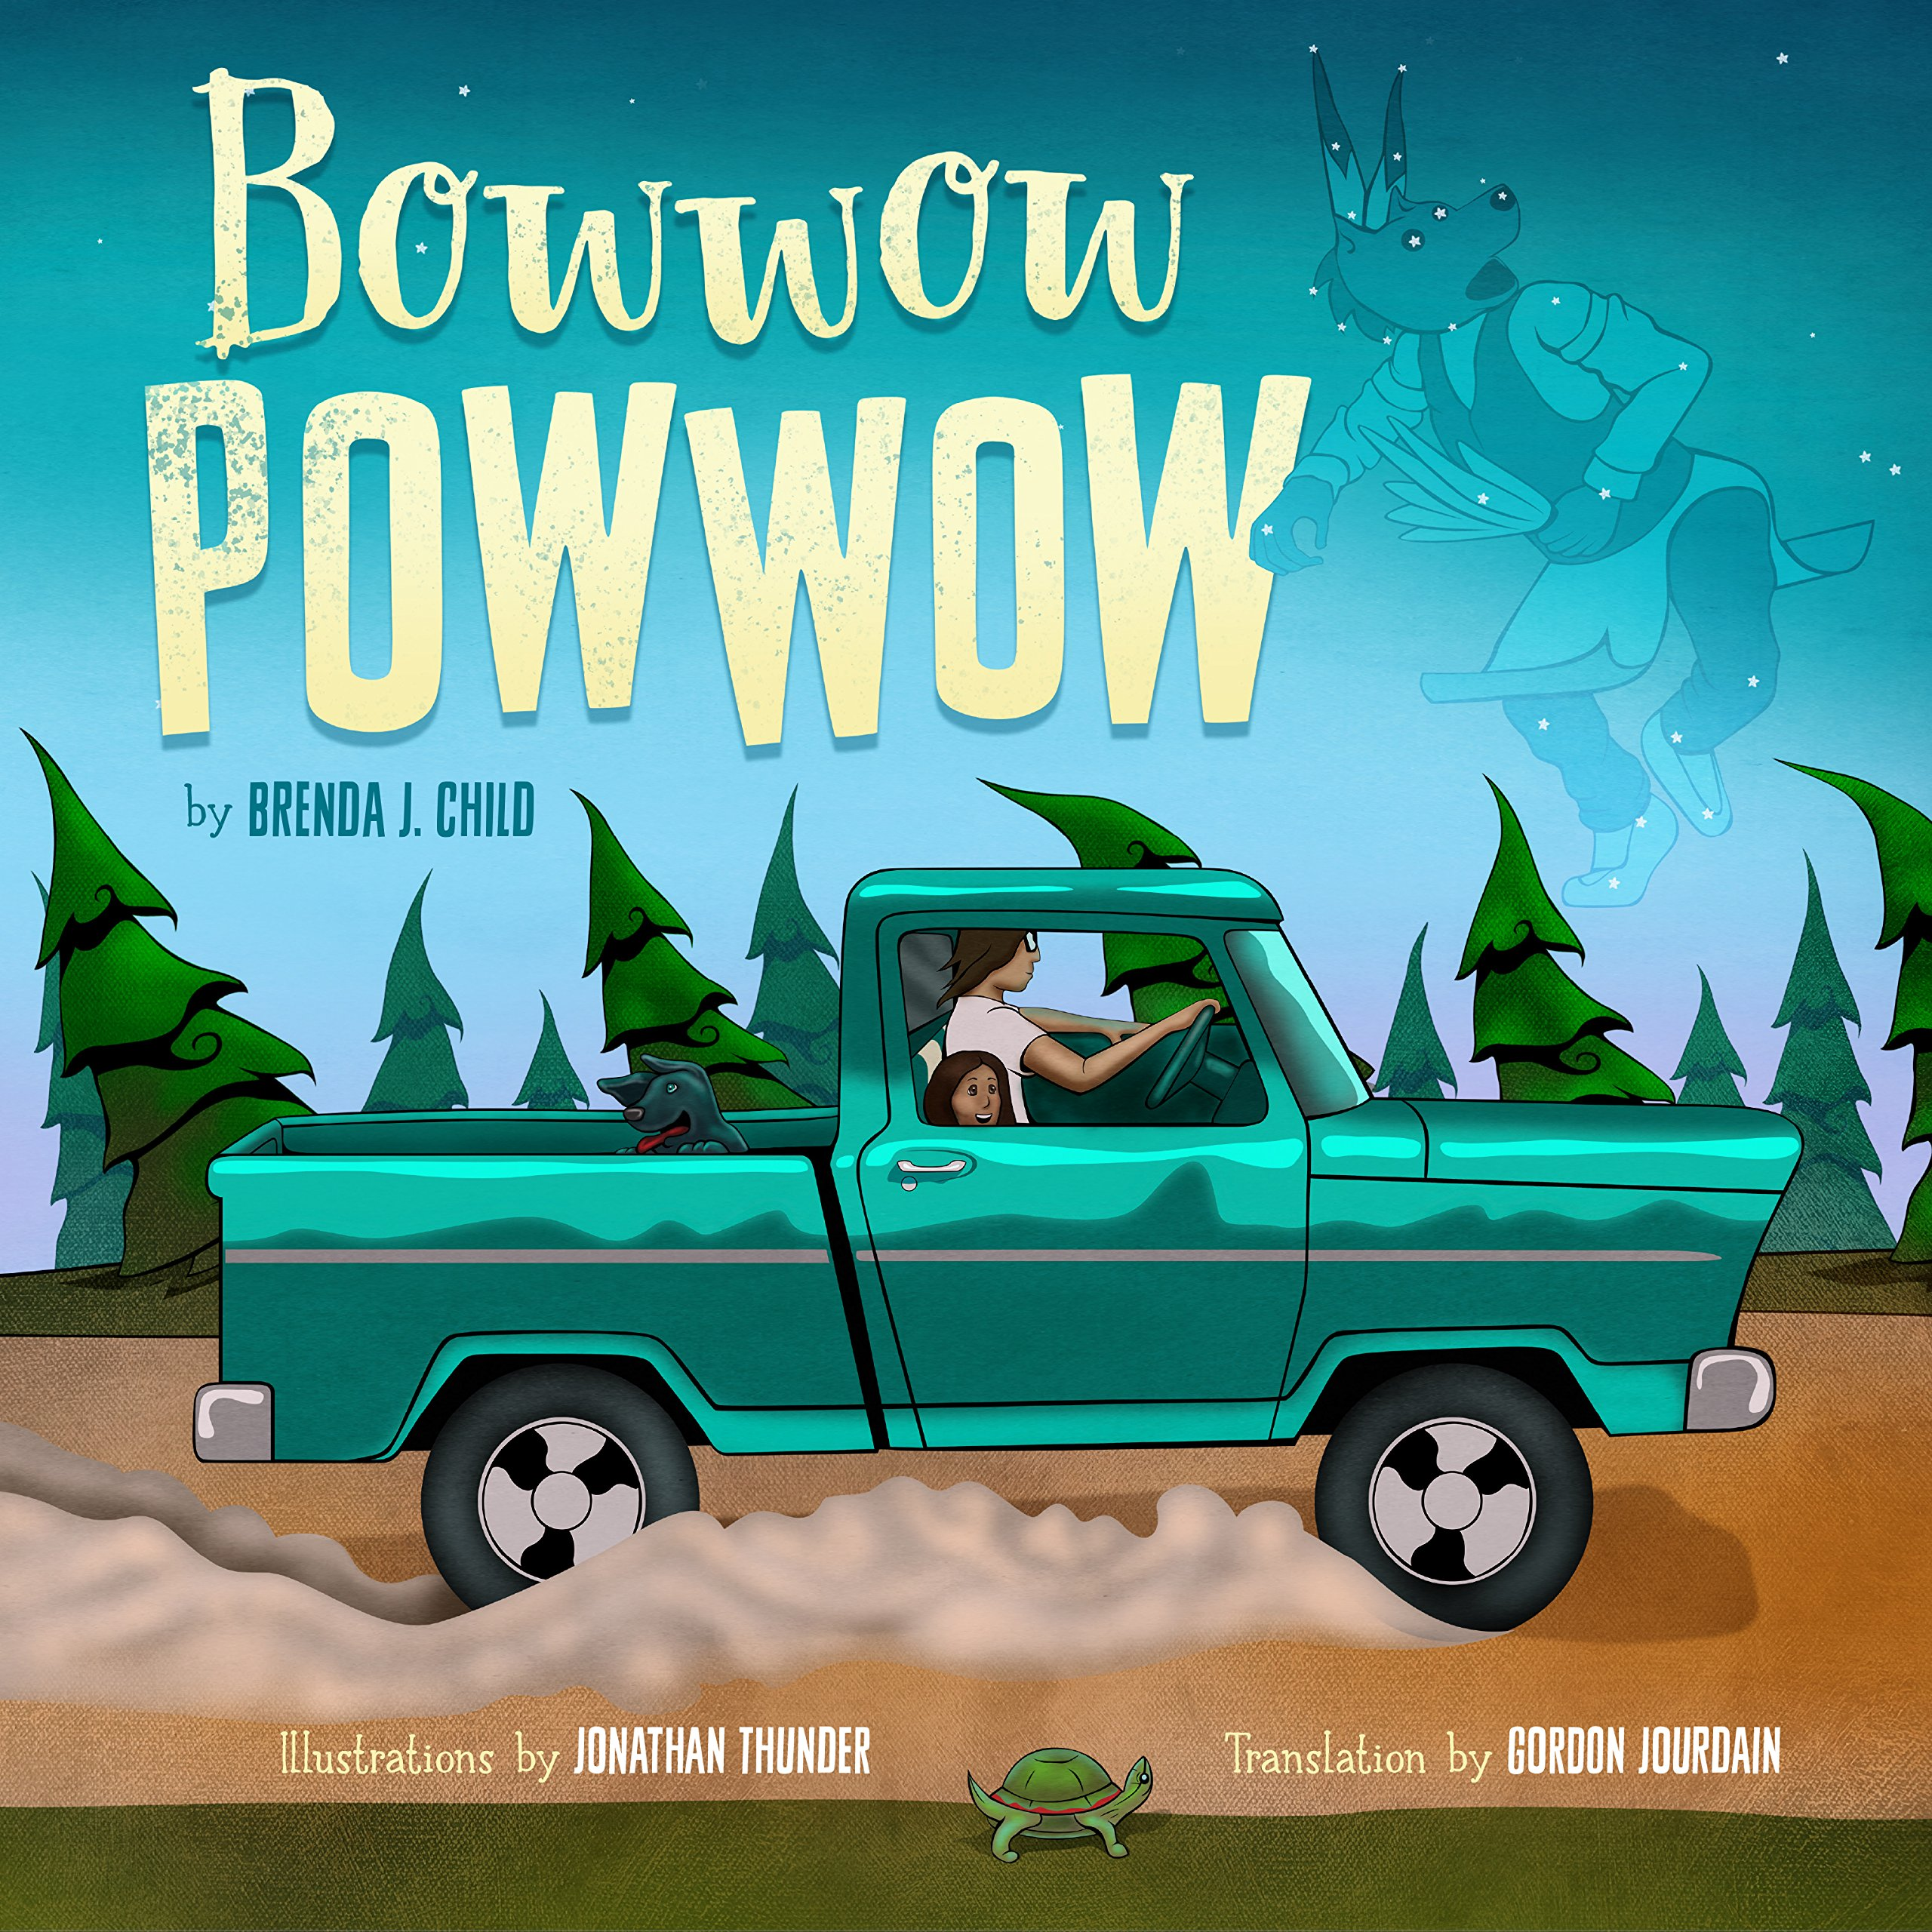 Image result for bowwow powwow